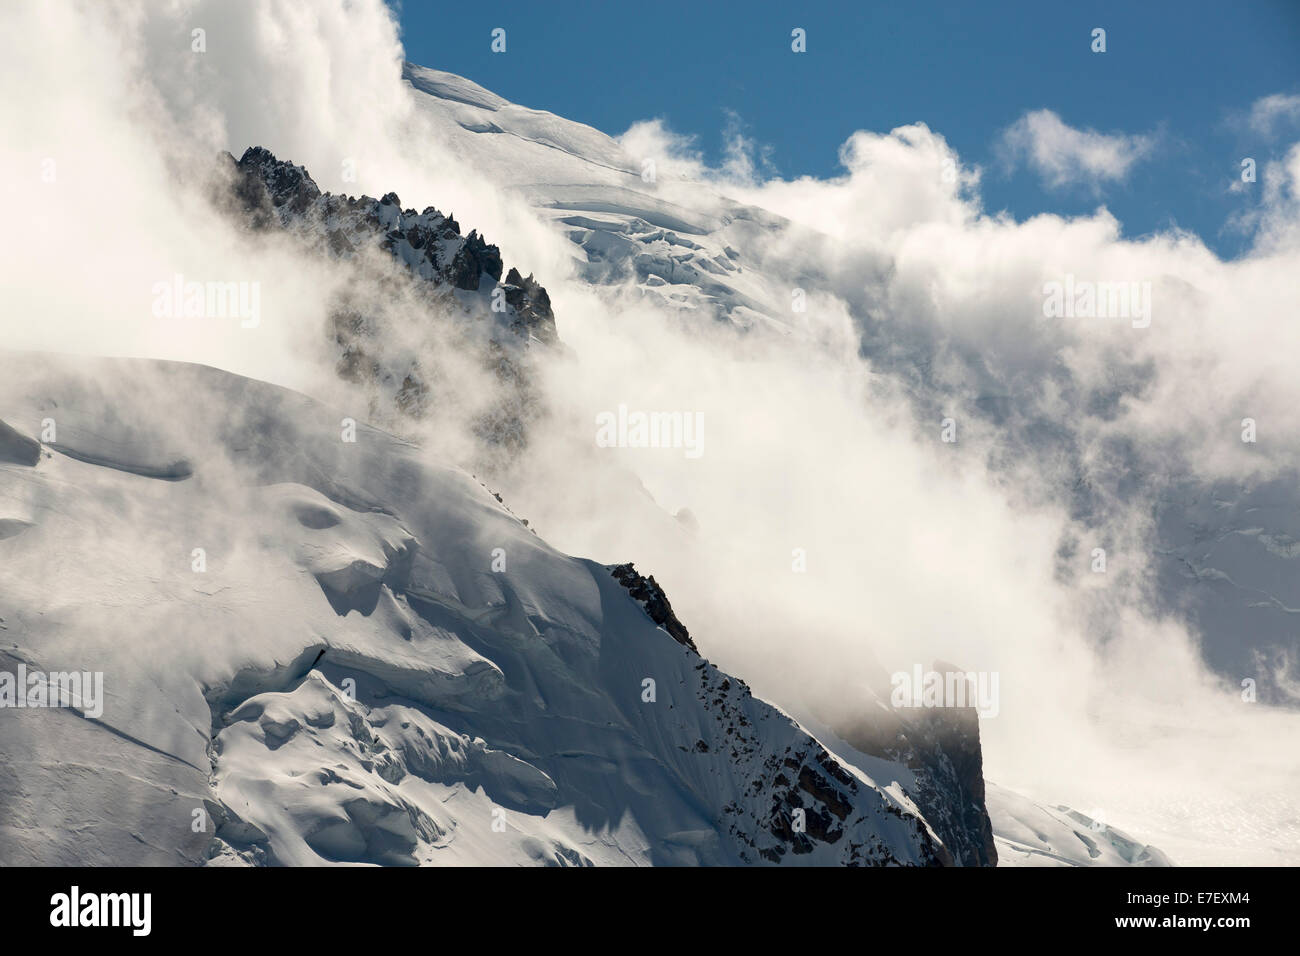 Mont Blanc and the Bossons glacier from the Aiguille Du Midi, France. Stock Photo